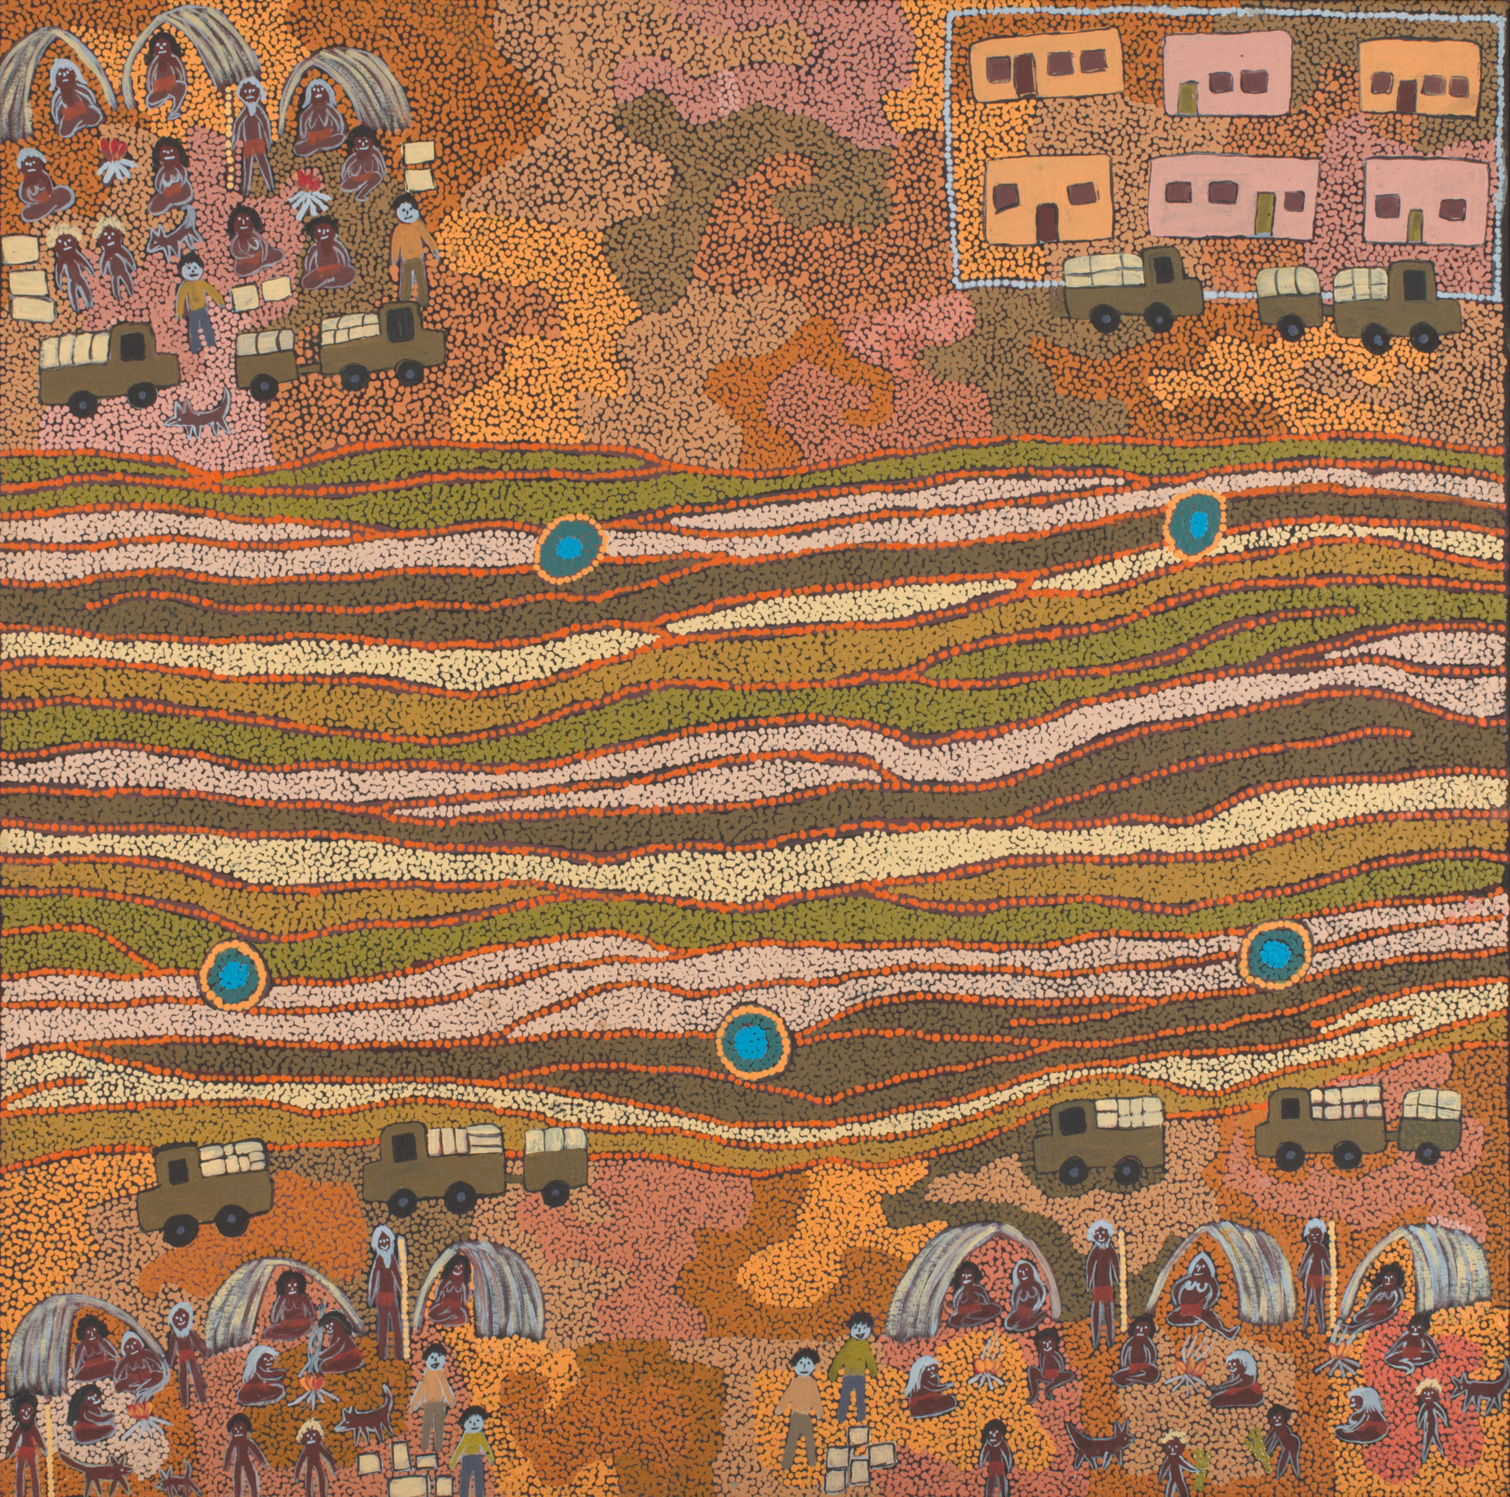 An acrylic painting on canvas showing people and vehicles, with five waterholes running through the centre. - click to view larger image